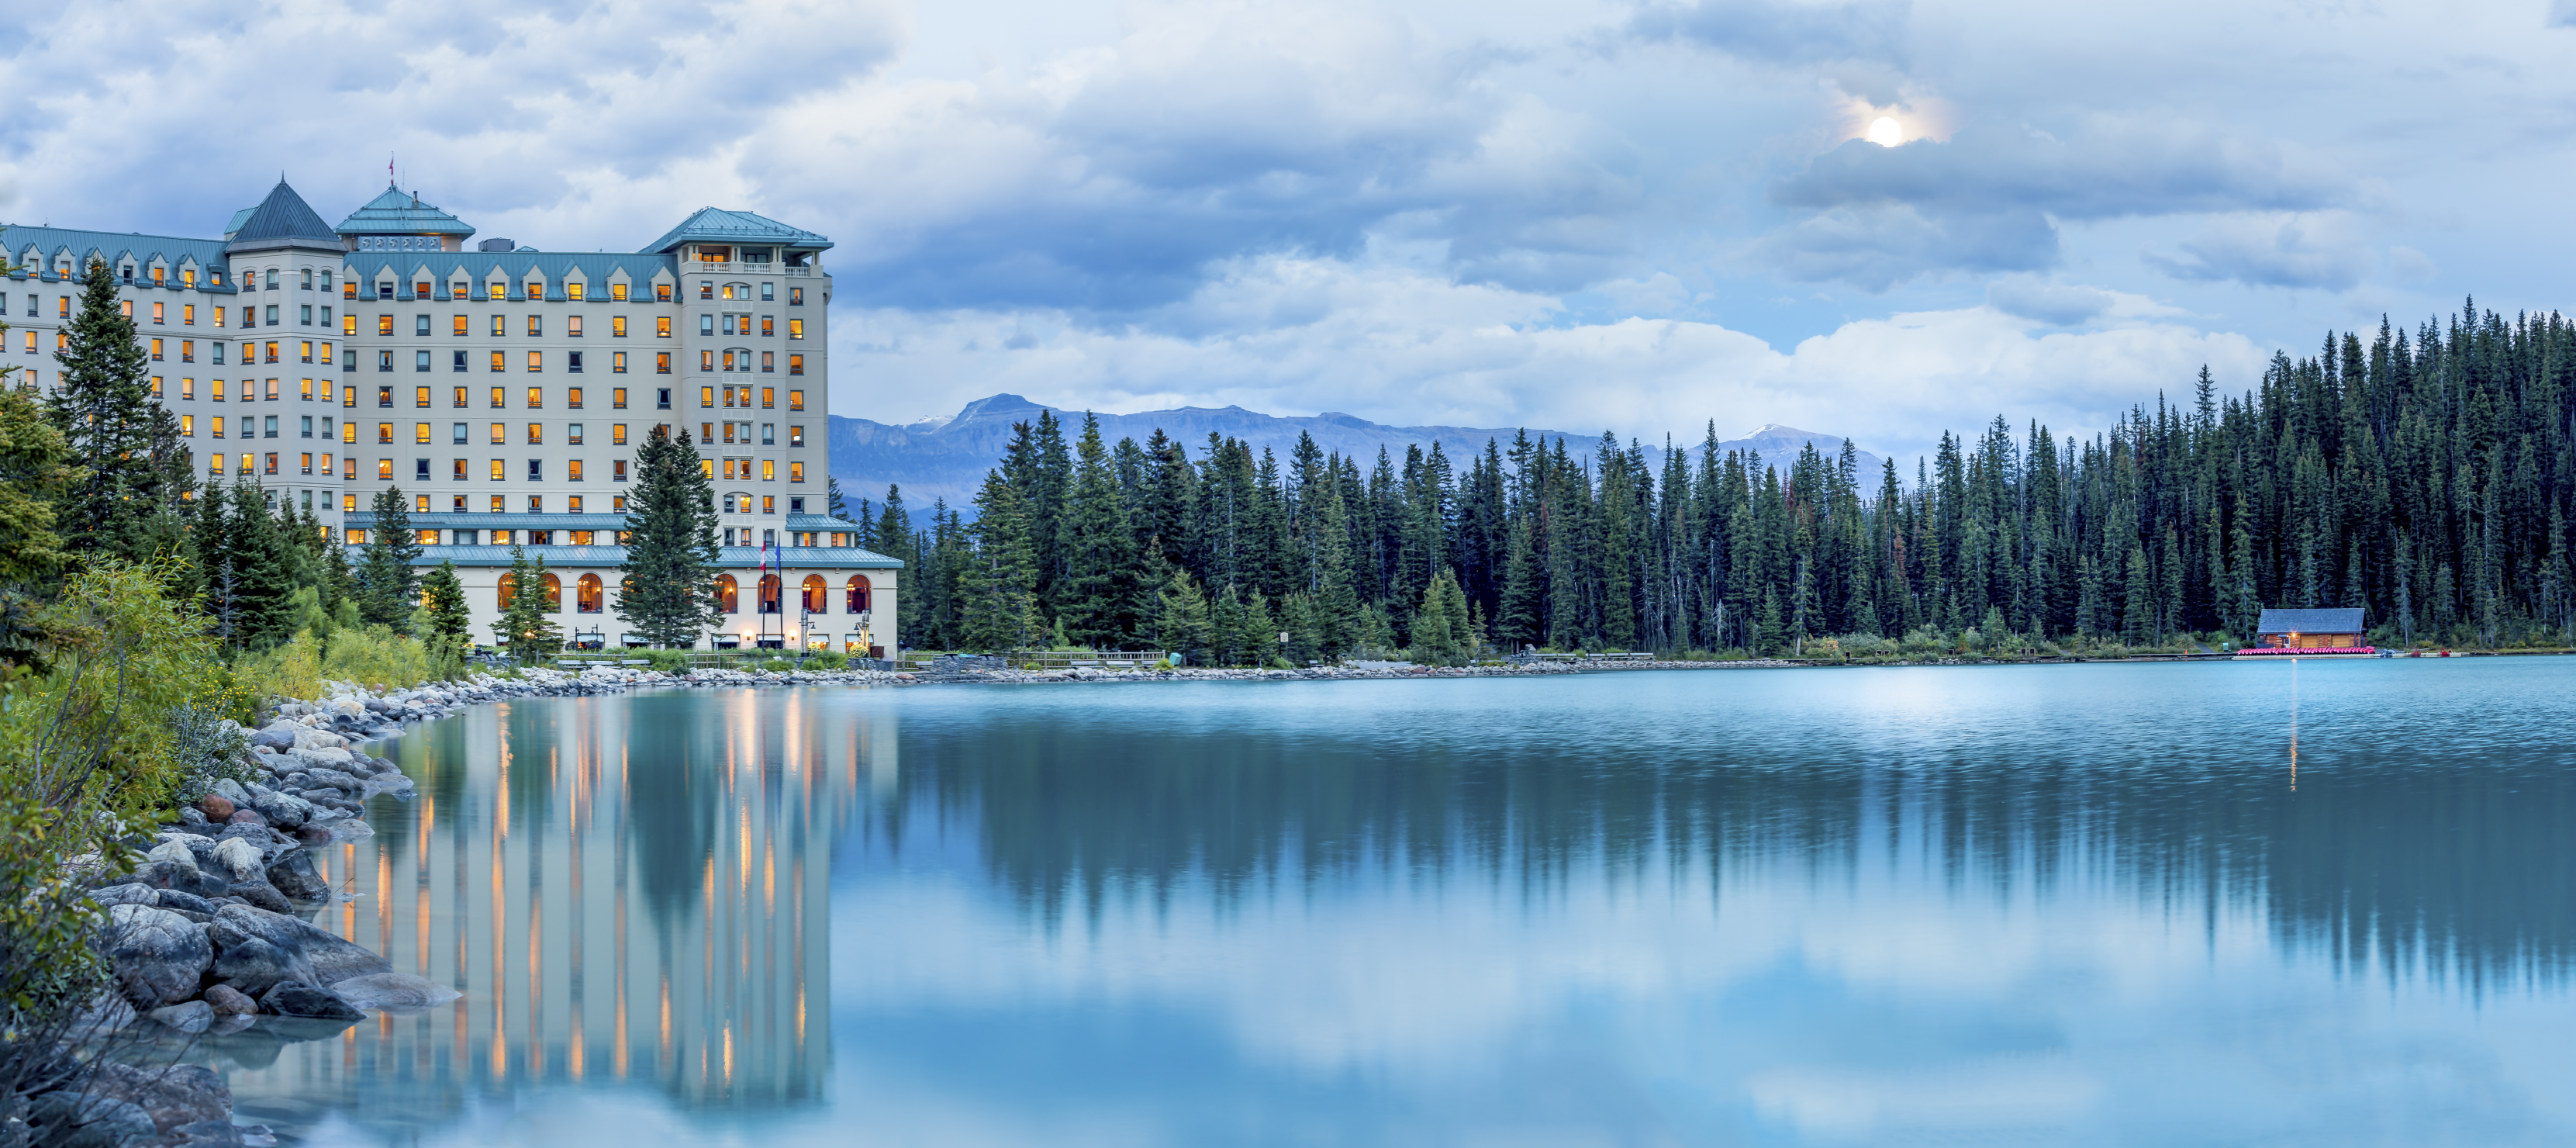 The Picturesque Fairmont Cau Lake Louise